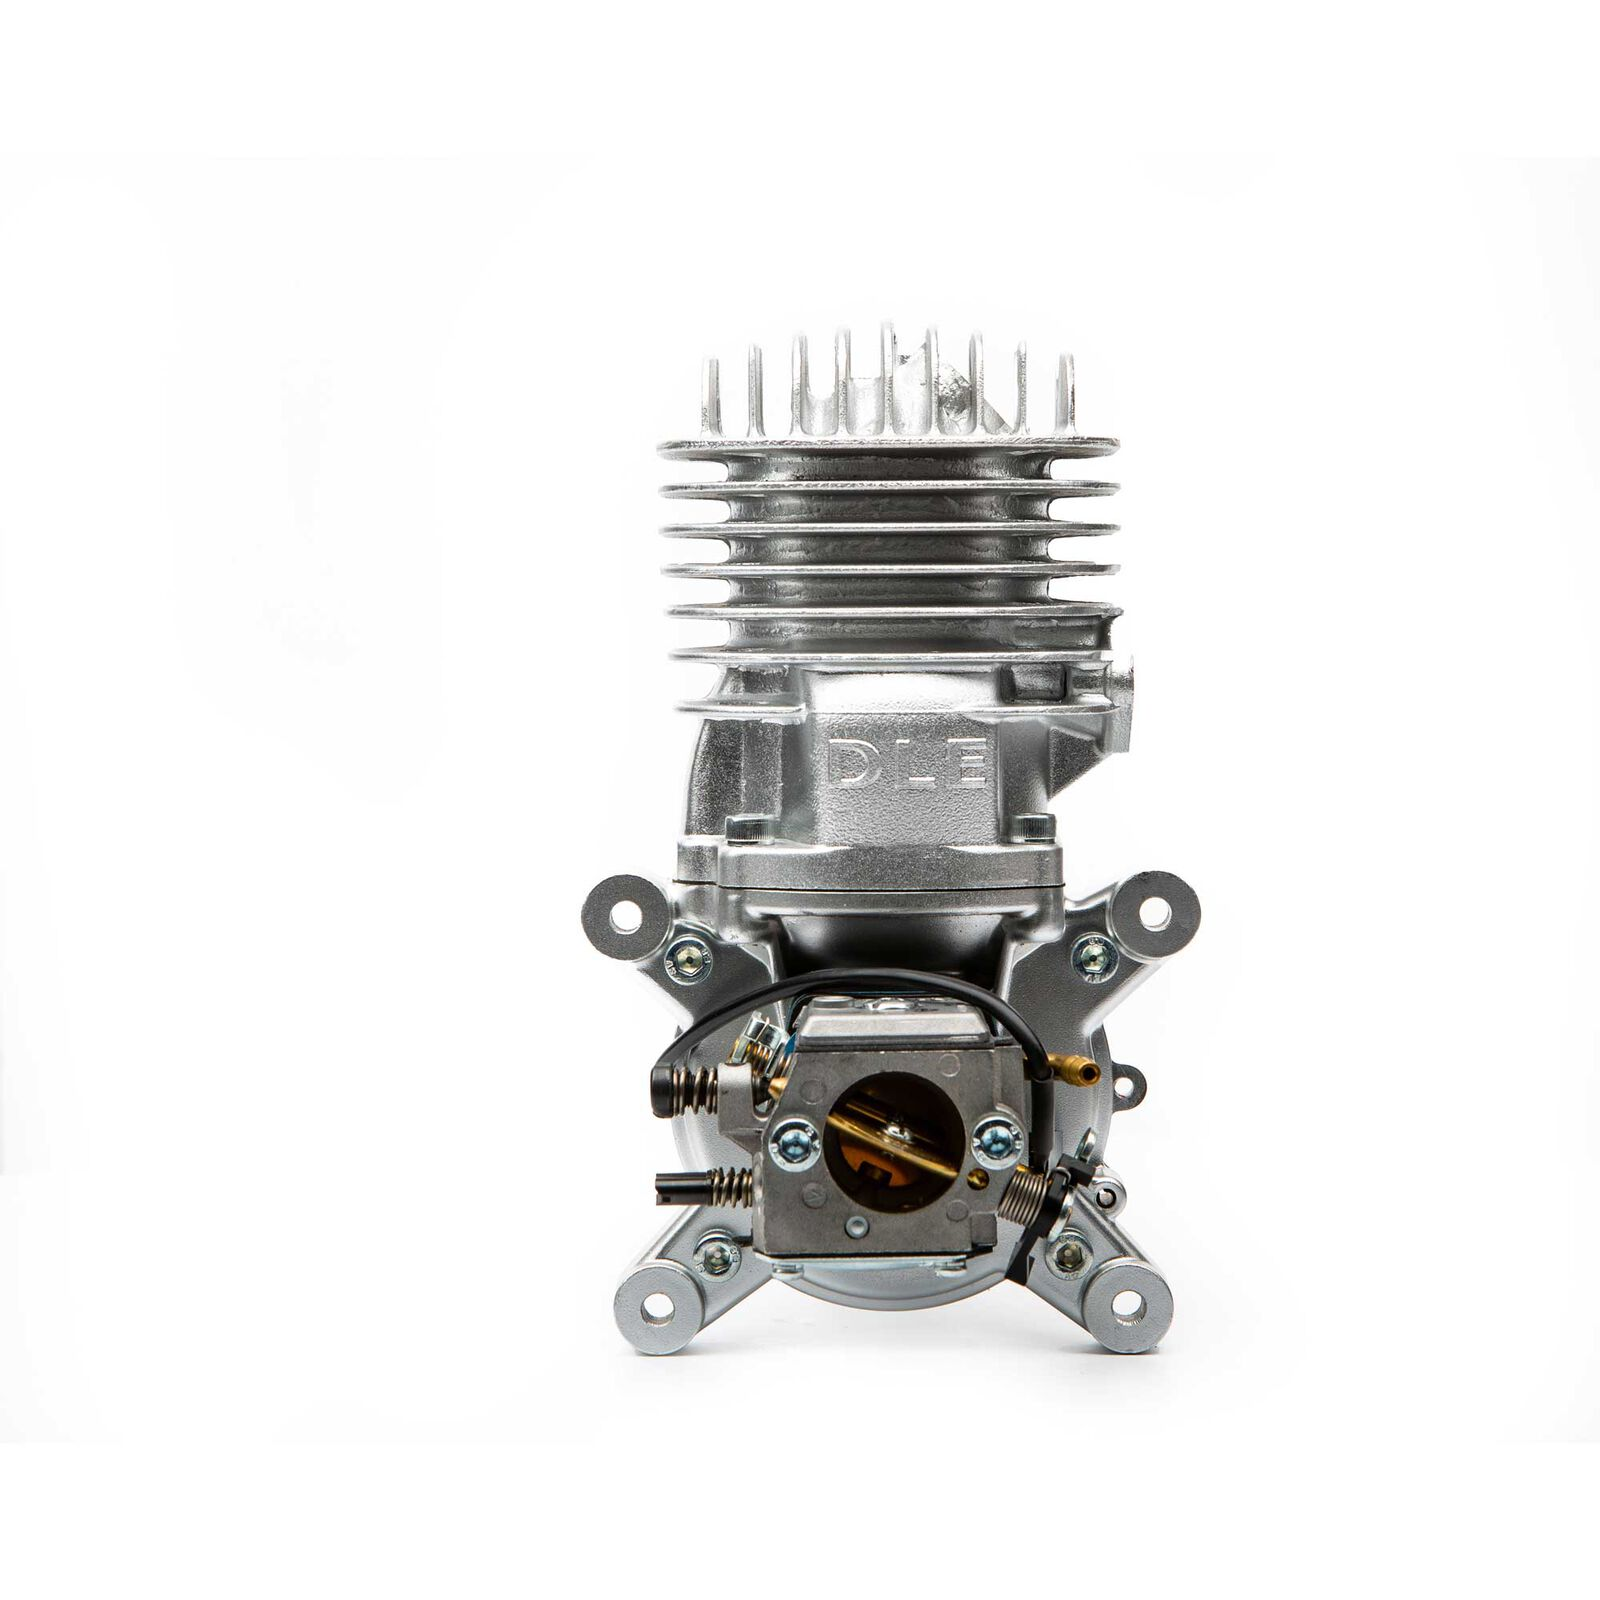 DLE-65cc Gas Engine with Elect Ignition and Muffler